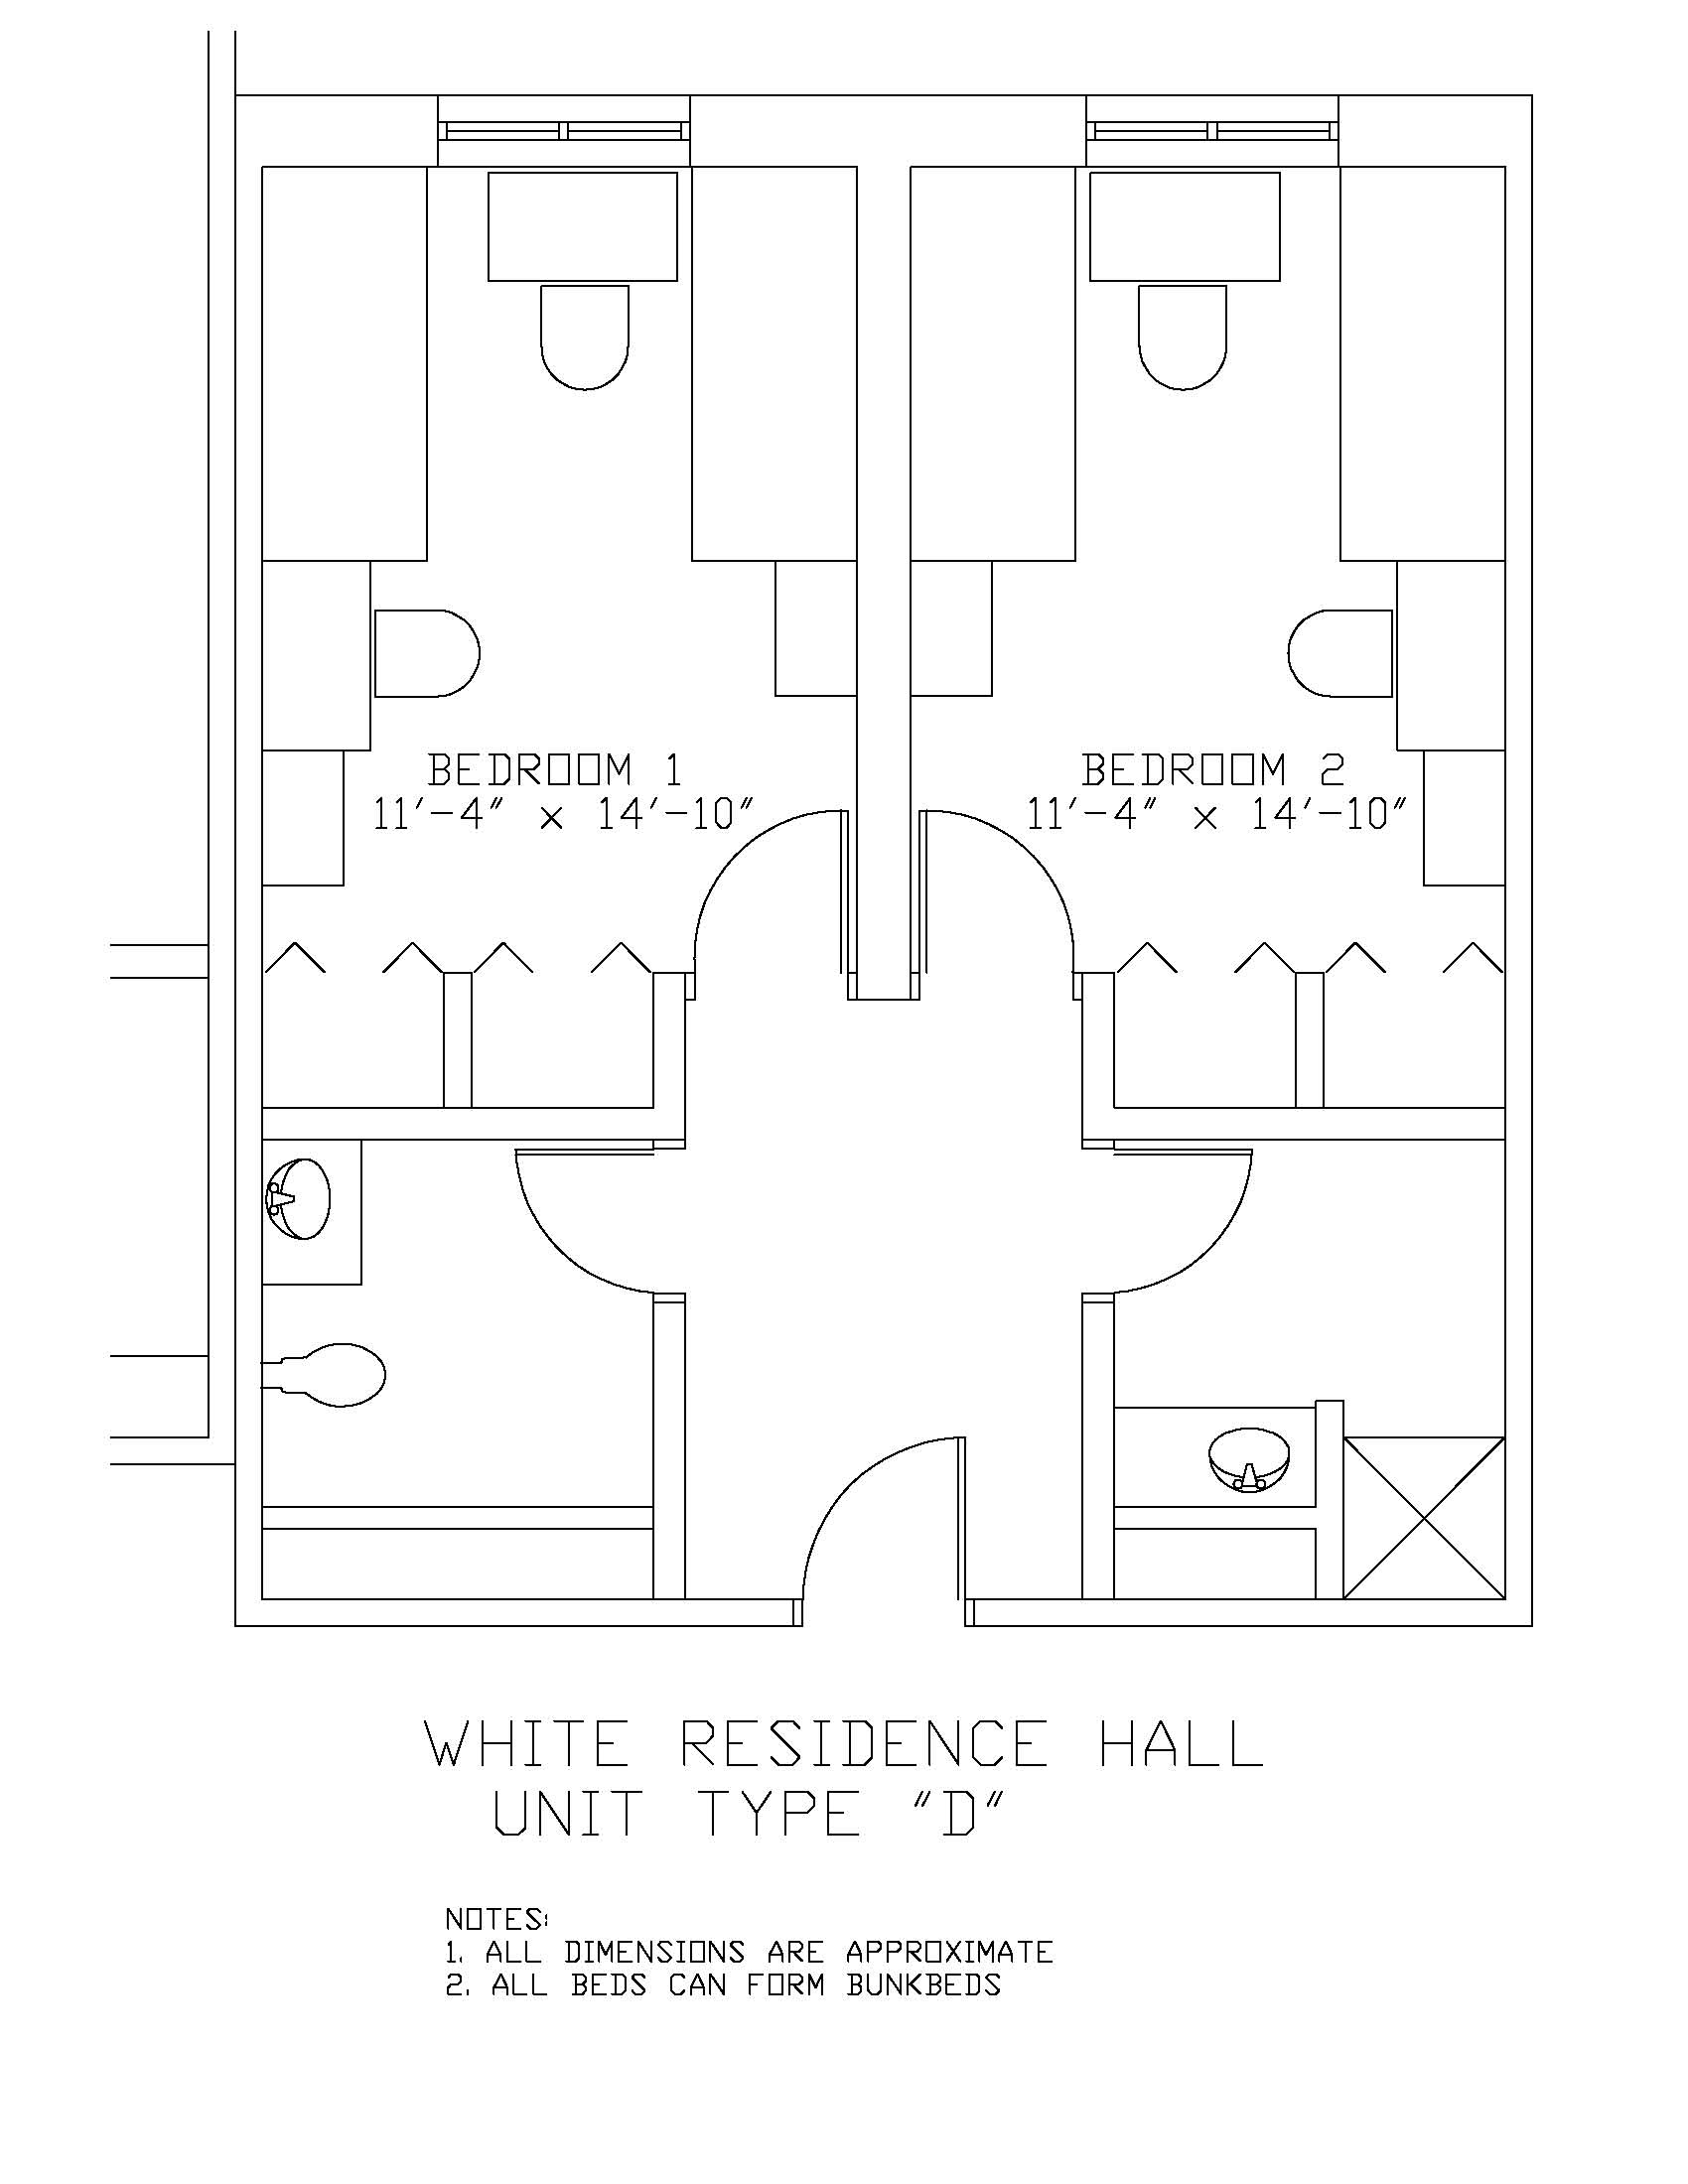 James S. White Hall: Type D